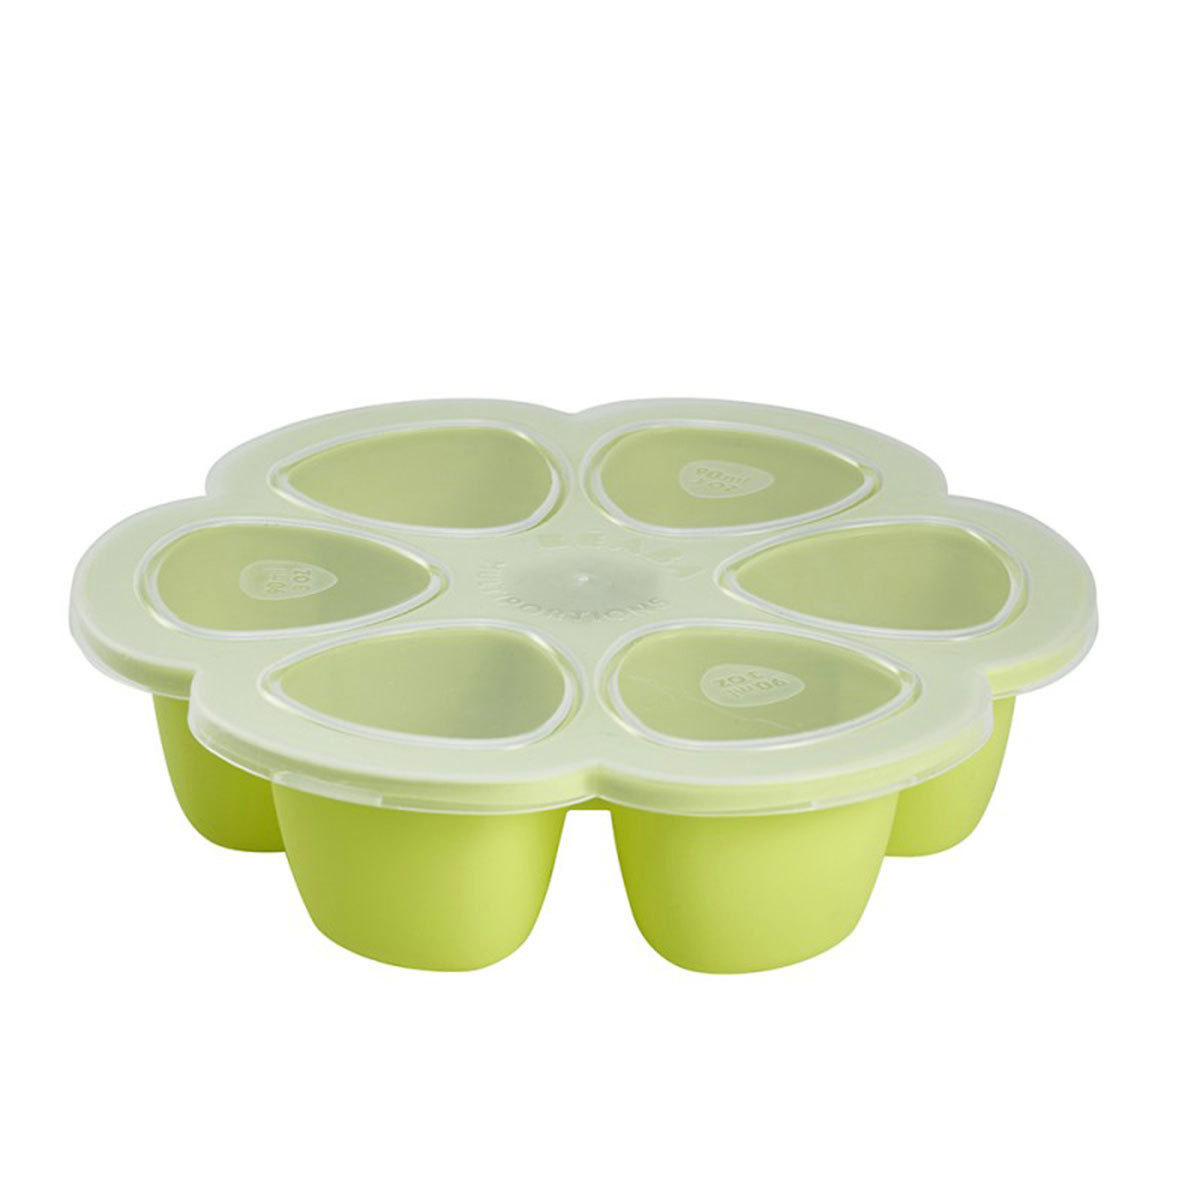 Vaisselle & Couvert Multi Portions Silicone 6 x 90 ml - Néon Multi Portions Silicone 6 x 90 ml - Néon